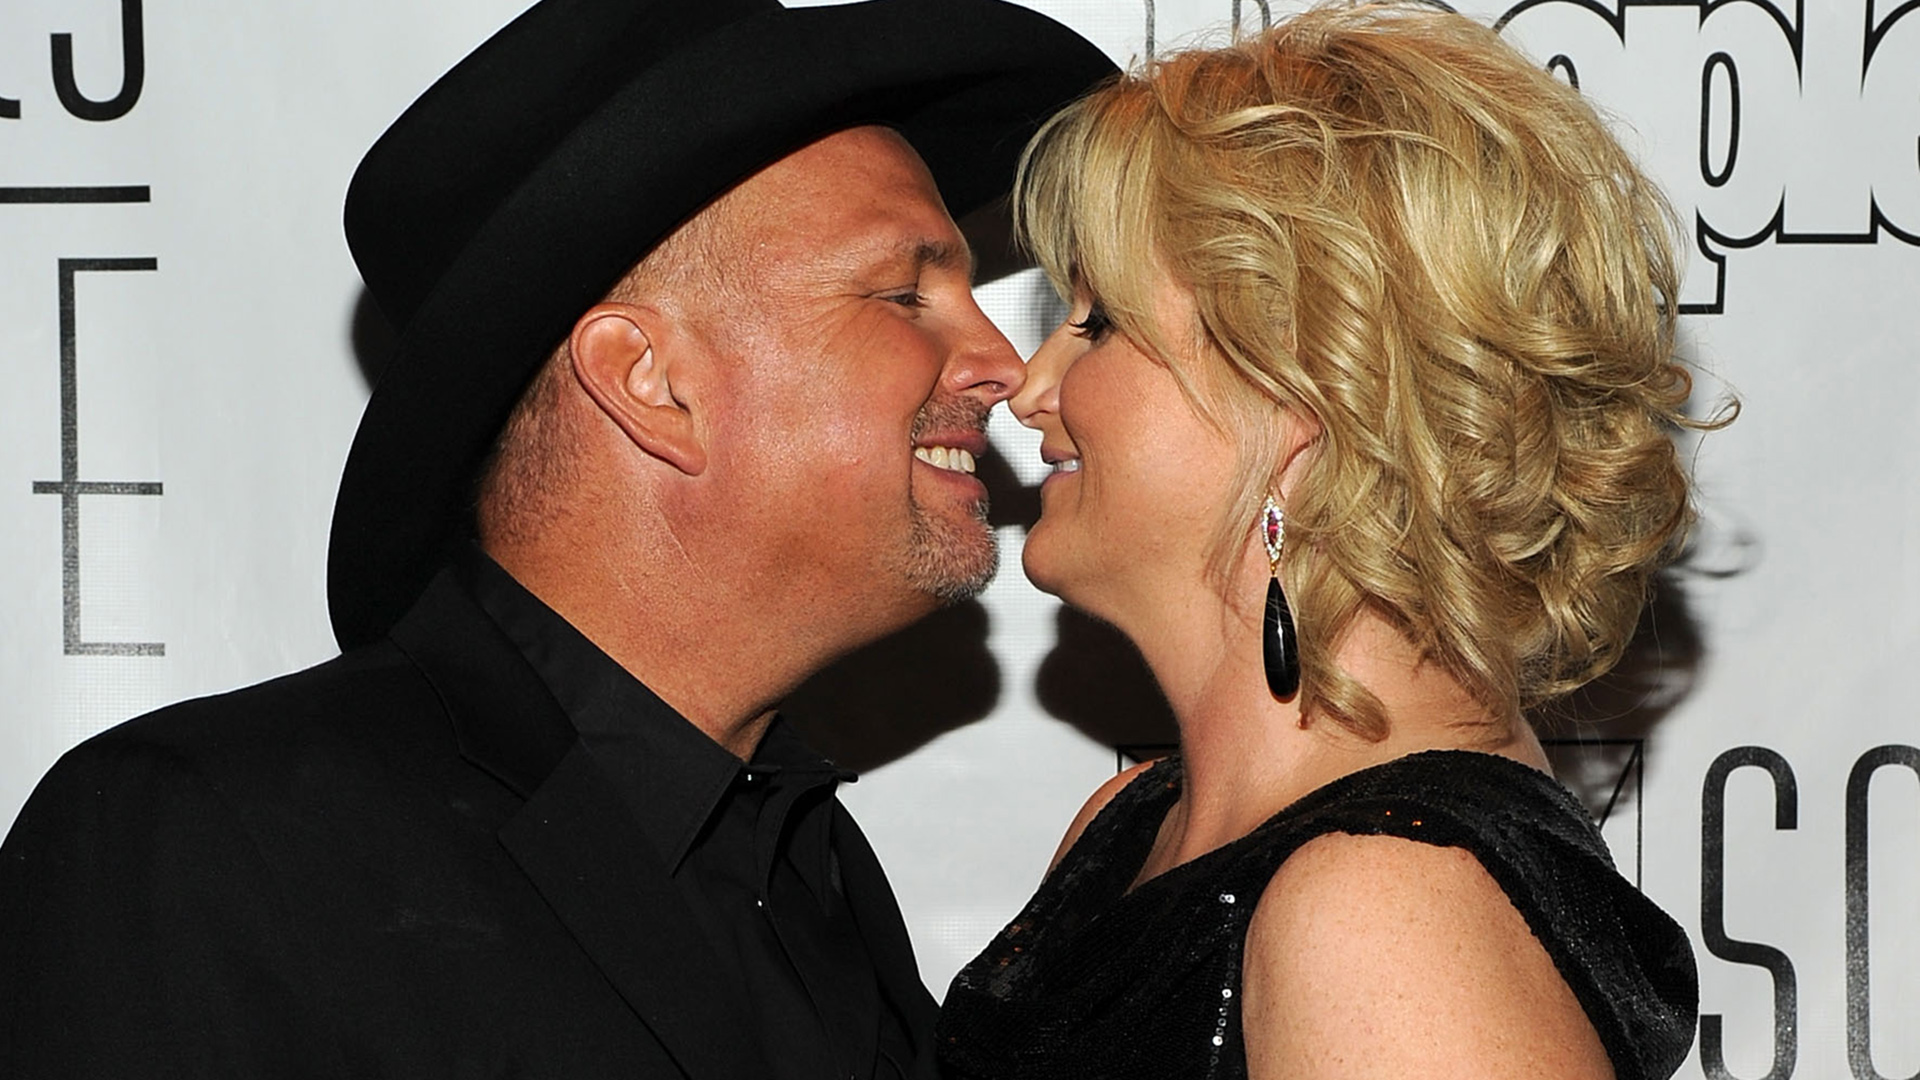 Garth brooks sends birthday wishes to wife trisha yearwood for Trisha yearwood and garth brooks wedding pictures